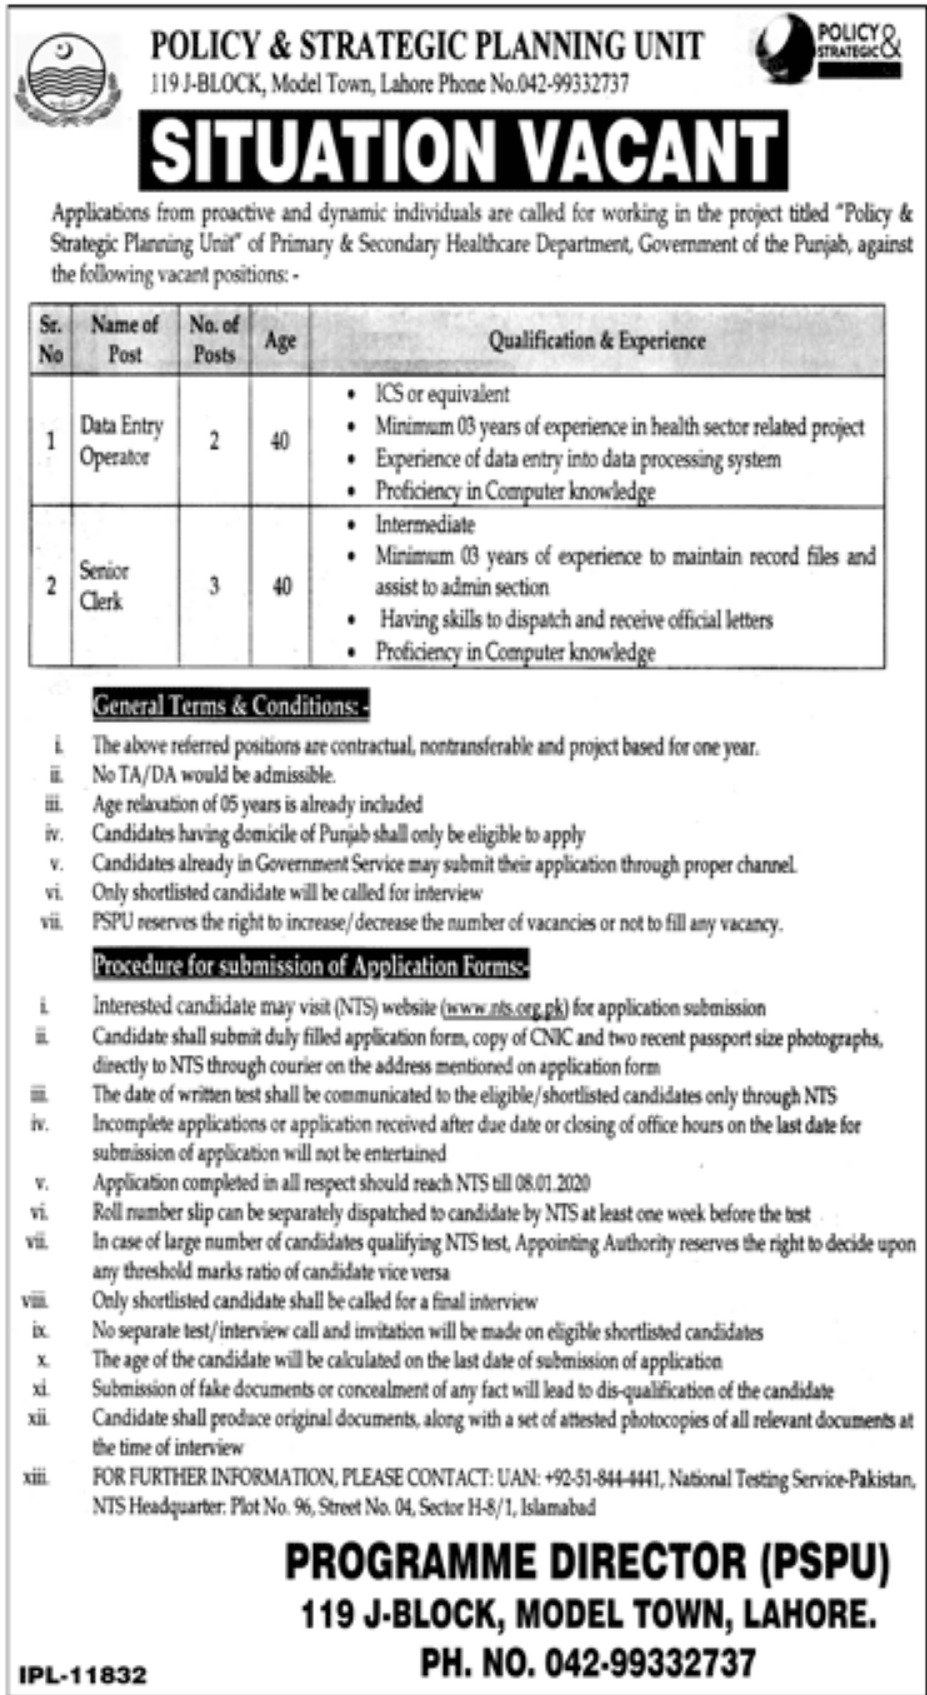 Policy Strategic Planning Unit PSPU Jobs Via NTS